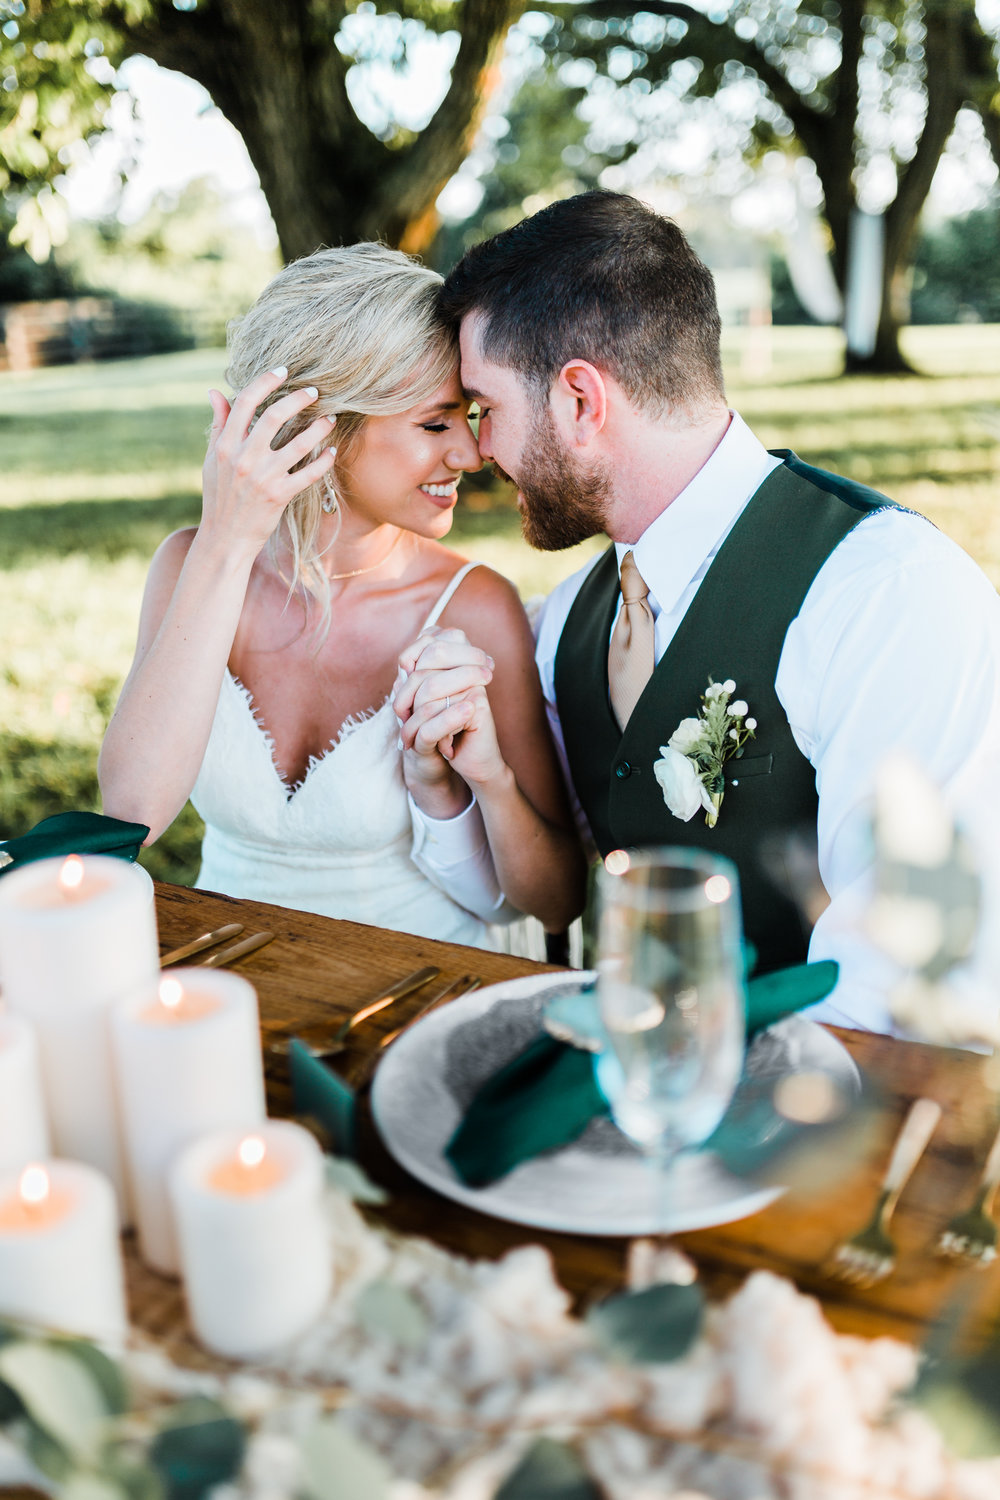 romantic boho wedding - green wedding ideas - bohemian weddings - best maryland wedding photographer